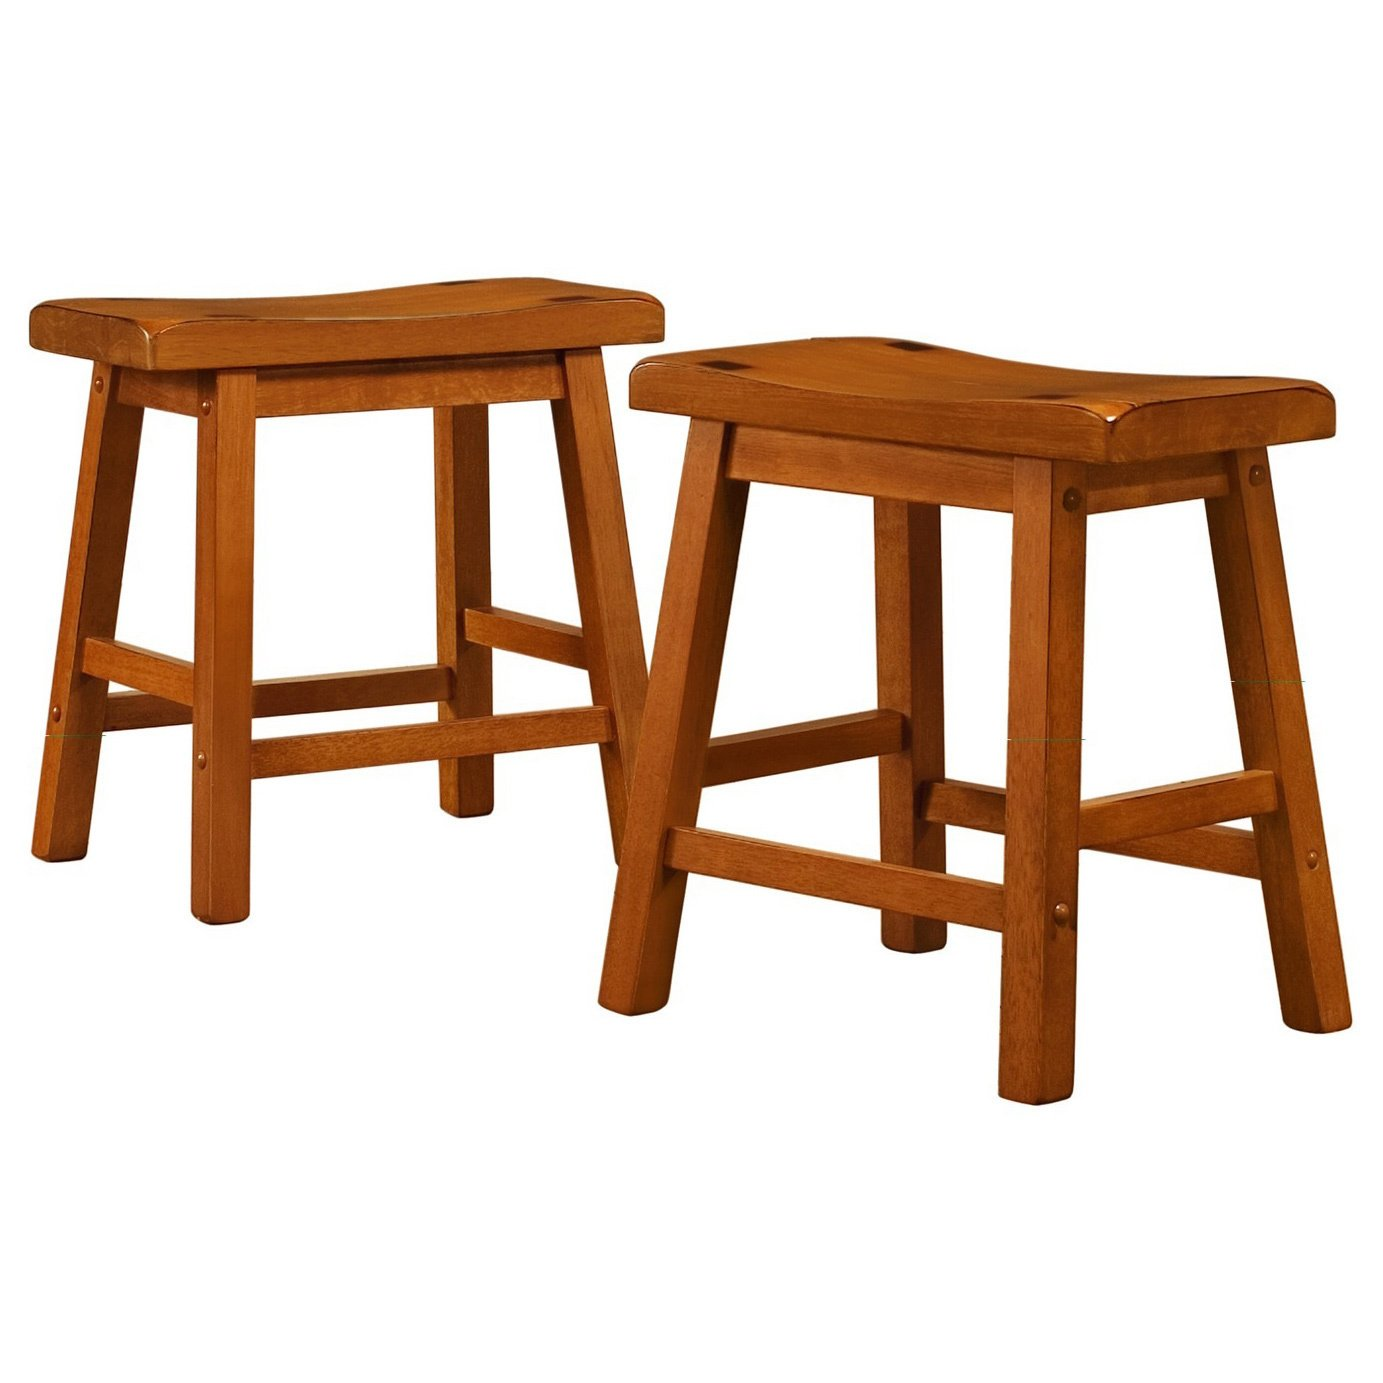 MattsGlobal Casual Crafted Solid Rubberwood Square Seat 18-inch Backless Stool Set of 2 (Honey Oak)